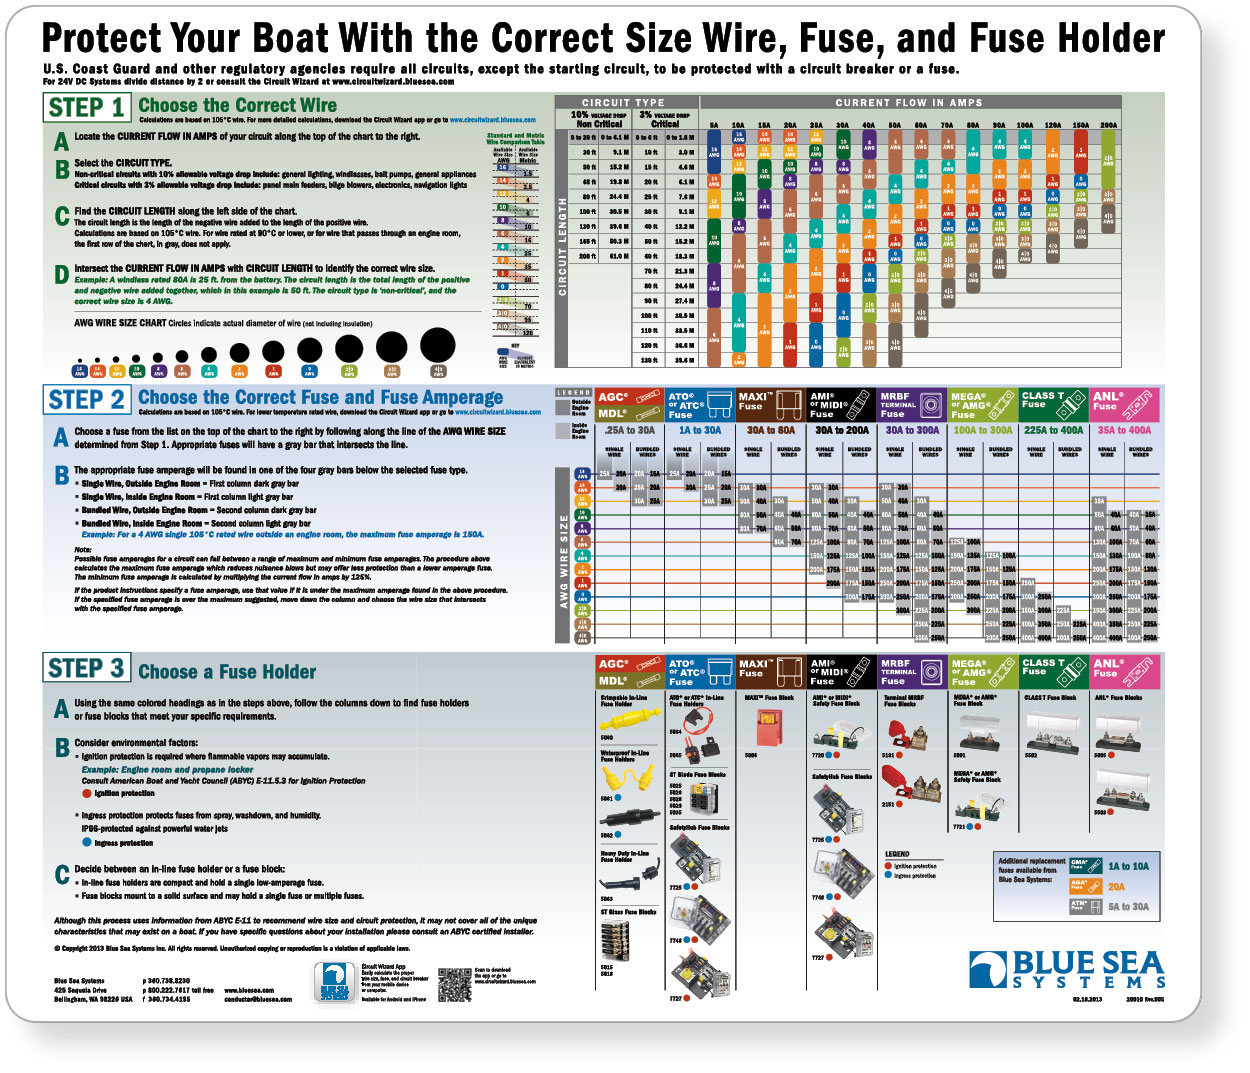 Fuse chart sizing wiring library wire fuse and fuse holder selection chart blue sea systems rh bluesea com fuse sizing chart for motors transformer fuse sizing chart keyboard keysfo Gallery